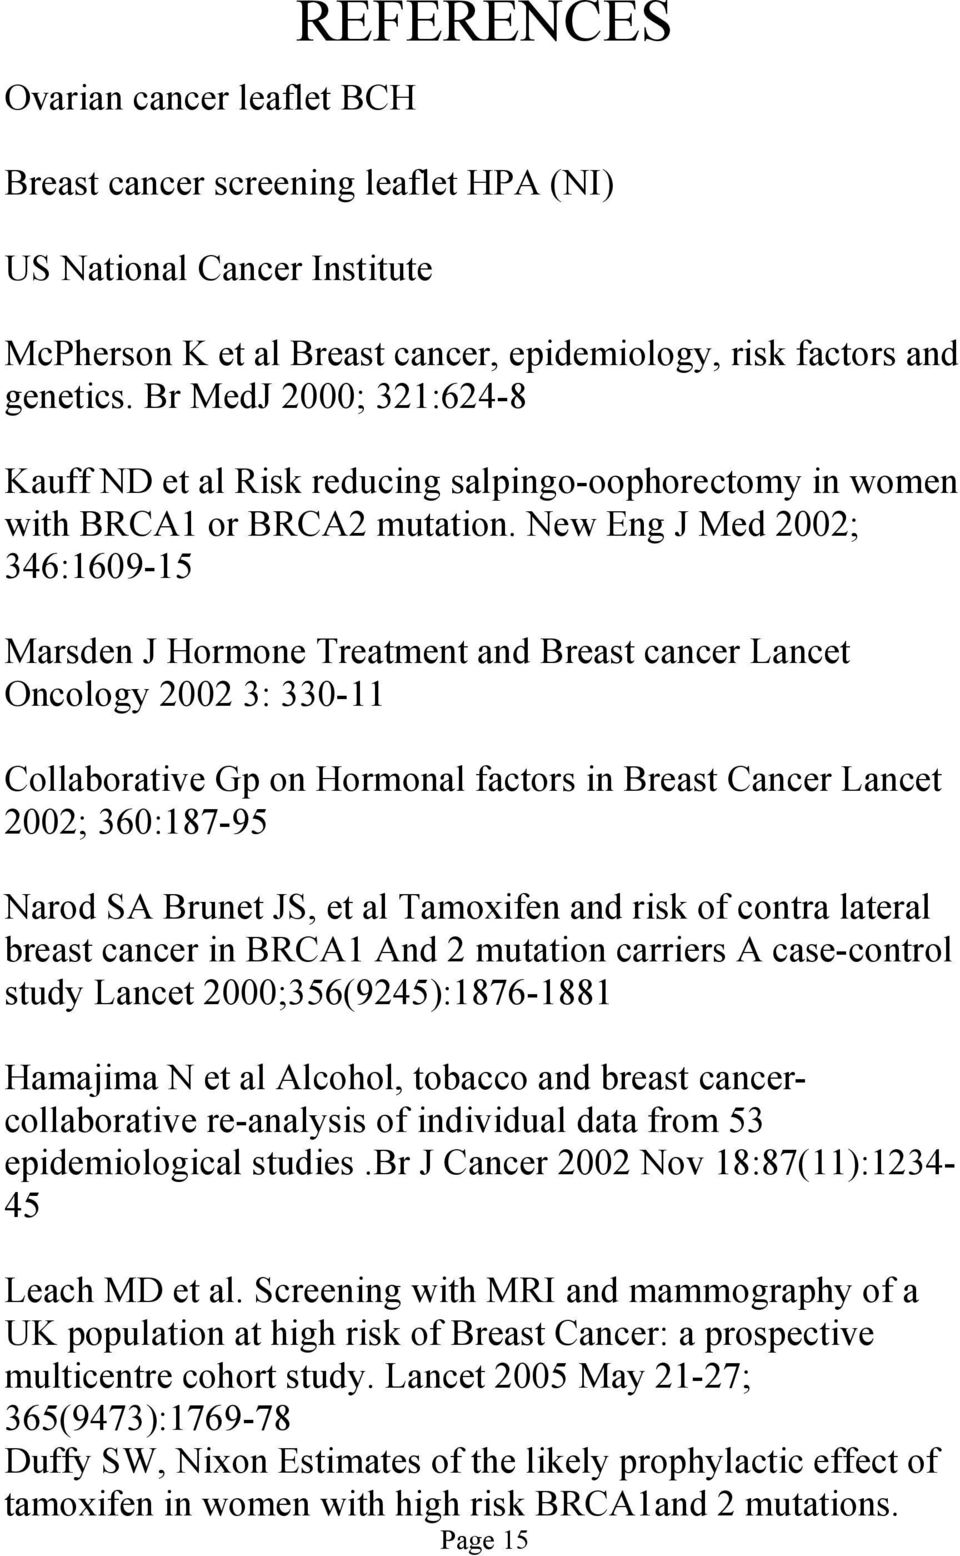 New Eng J Med 2002; 346:1609-15 Marsden J Hormone Treatment and Breast cancer Lancet Oncology 2002 3: 330-11 Collaborative Gp on Hormonal factors in Breast Cancer Lancet 2002; 360:187-95 Narod SA